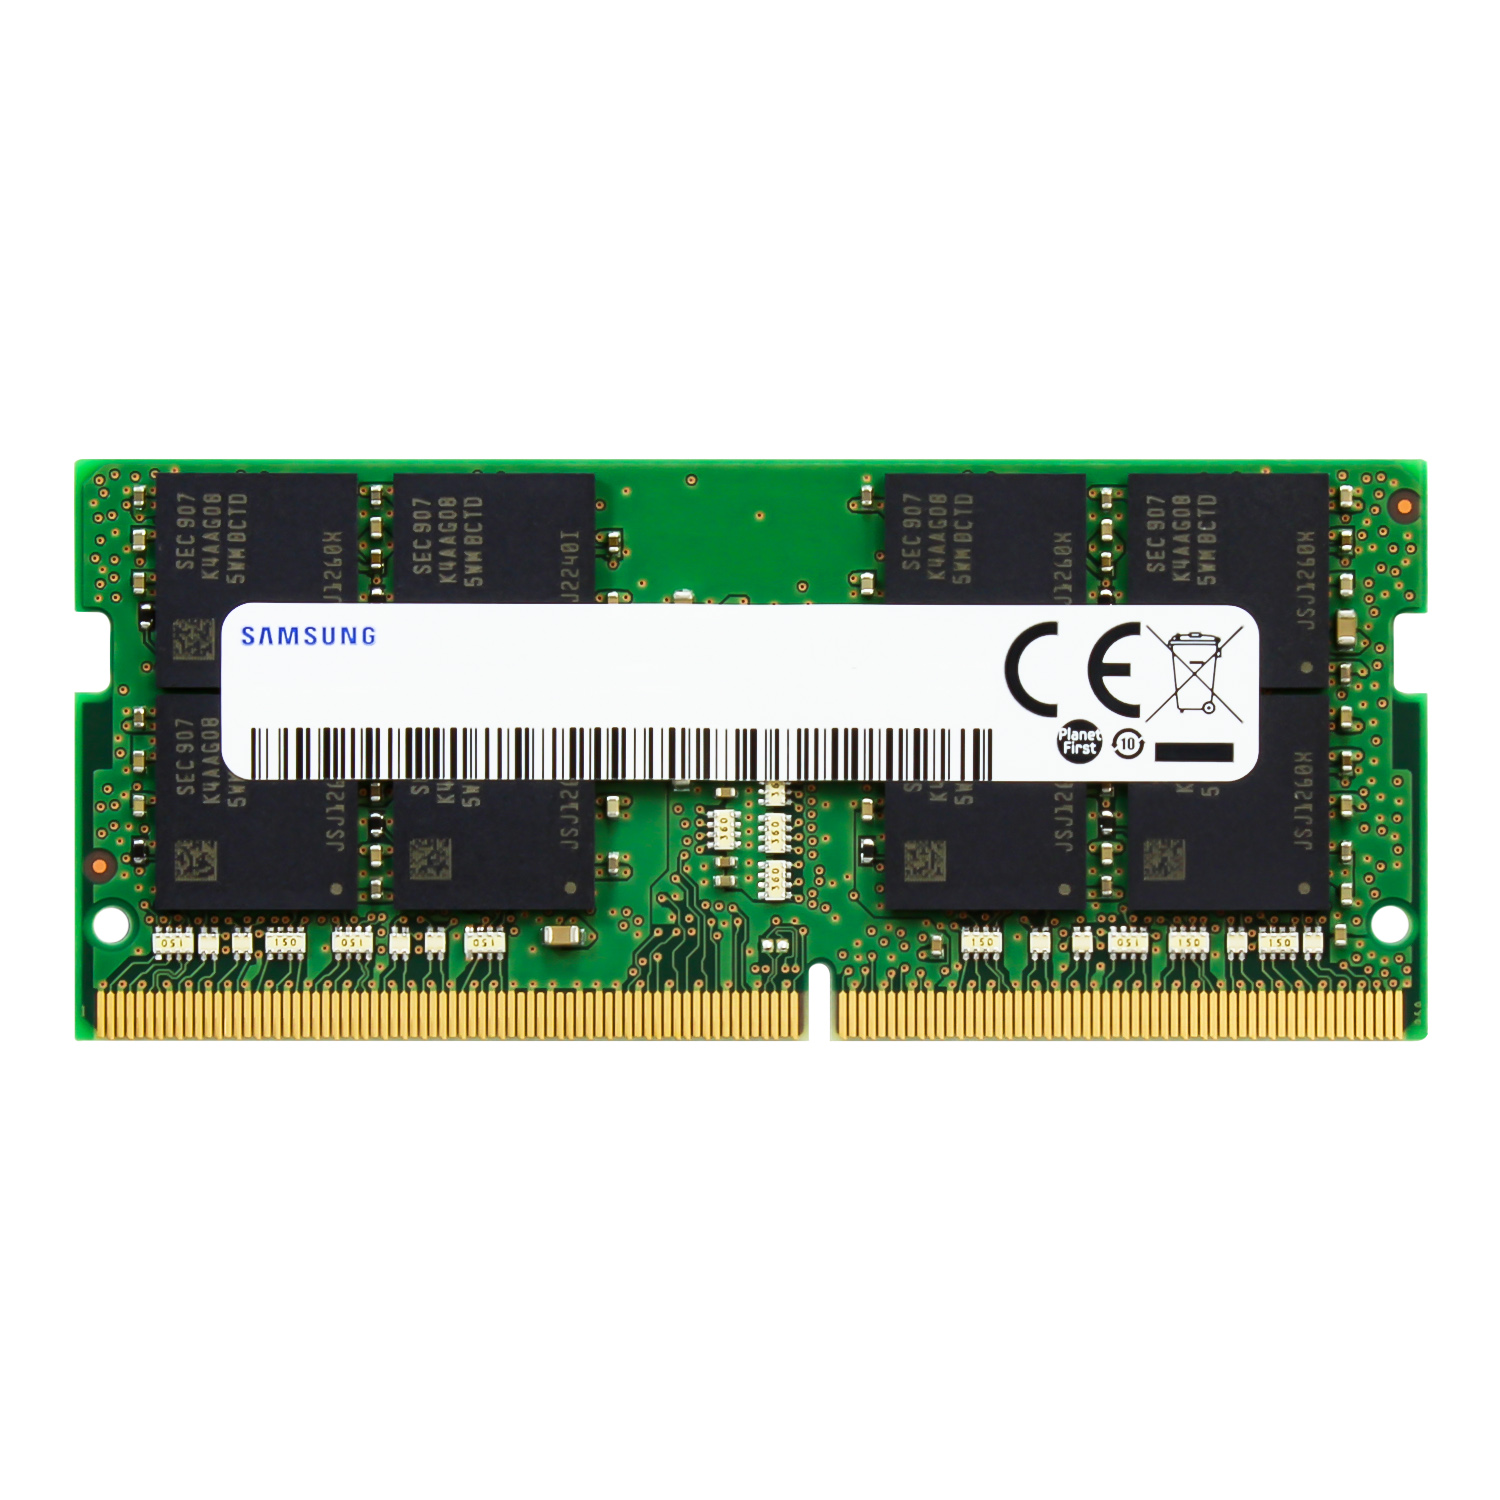 Samsung 32GB DDR4 2666MHz RAM Memory Module for Laptop Computers 260 Pin SODIMM, 1.2V M471A4G43MB1